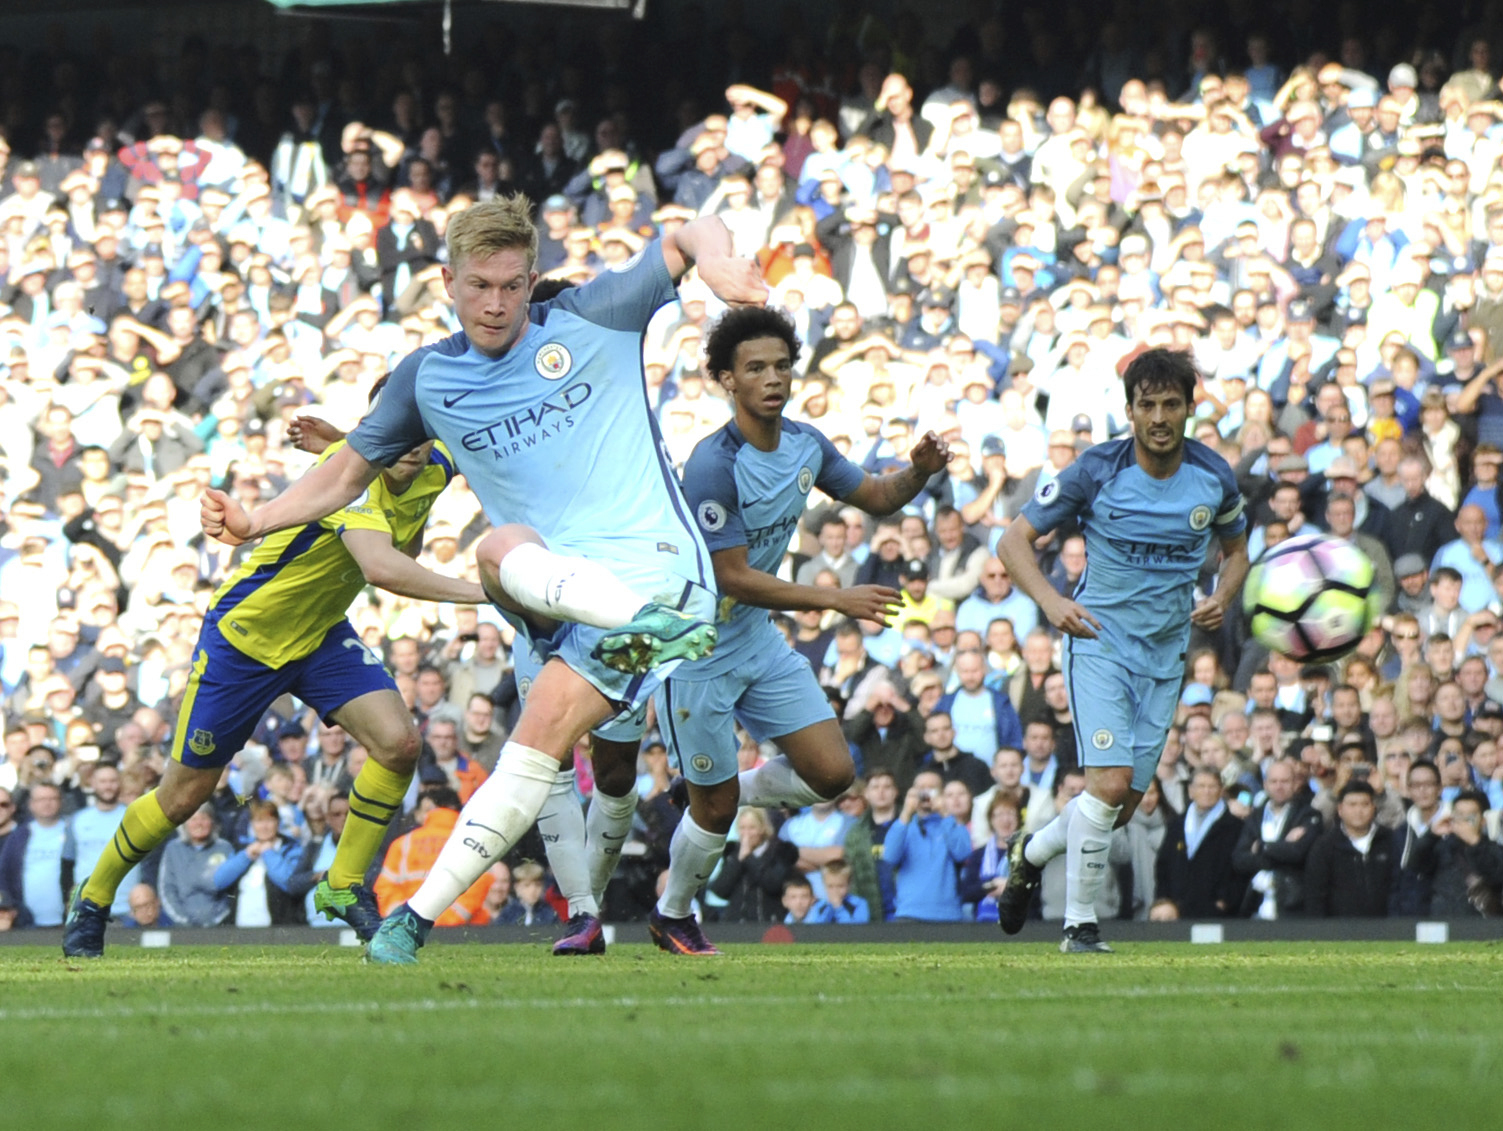 Paying the penalty - Kevin De Bruyne misses the first of City's two penalties against Everton.